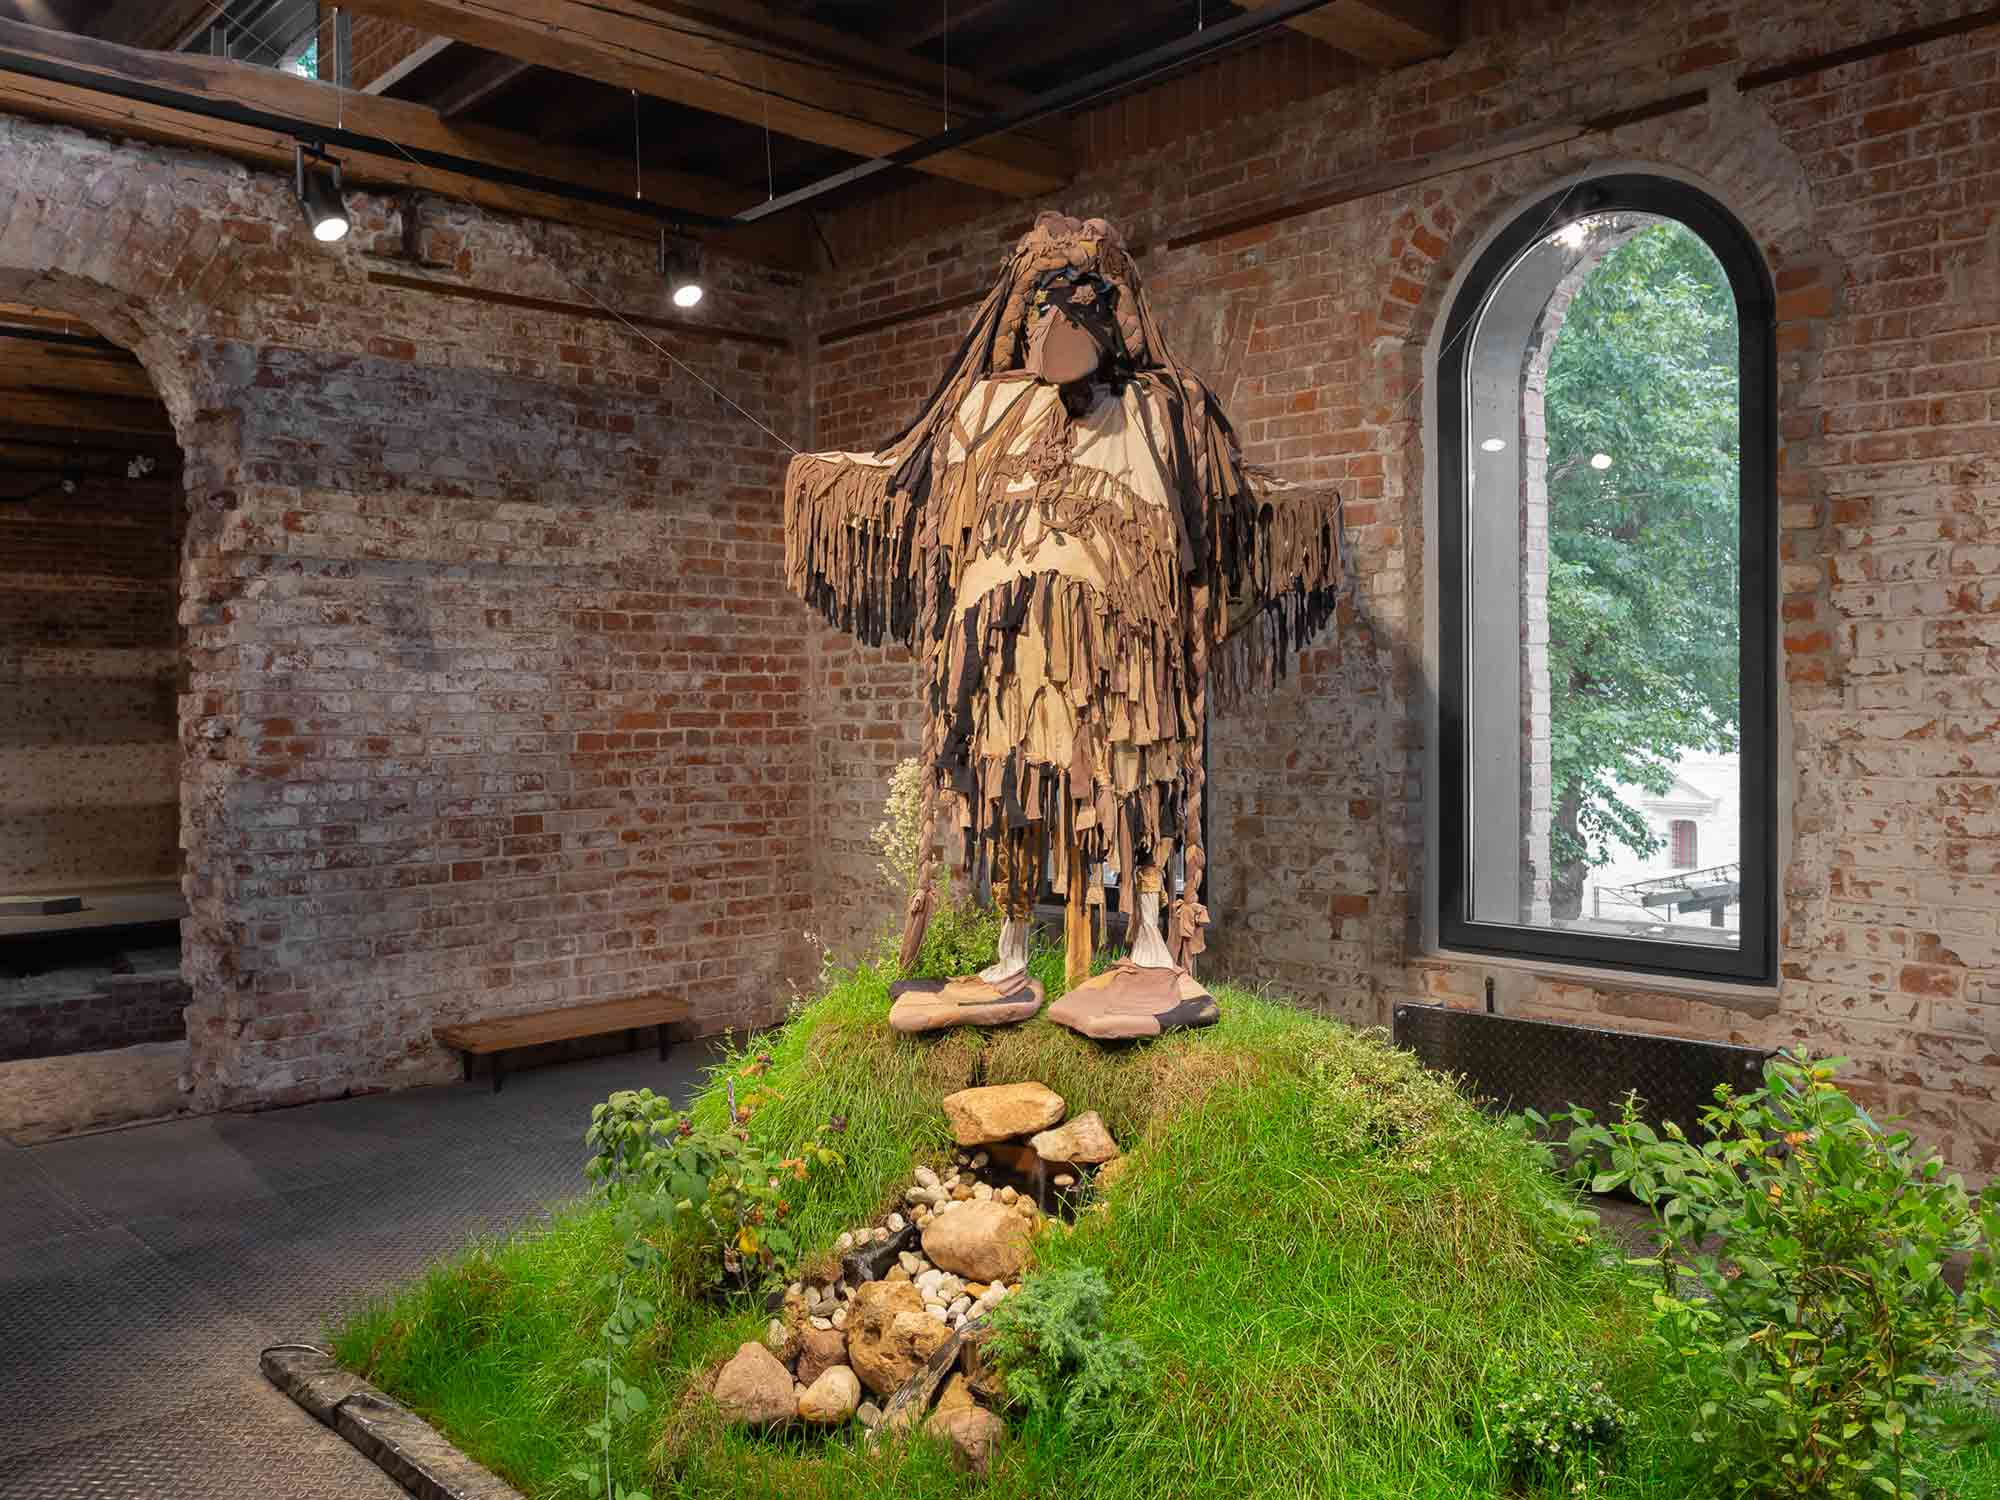 Sergey Kishchenko, Maxim Ilyukhin, King of the Hill (Tsar Mountains), (2017-2018). A mixed-media installation in the Form of an Ecosystem